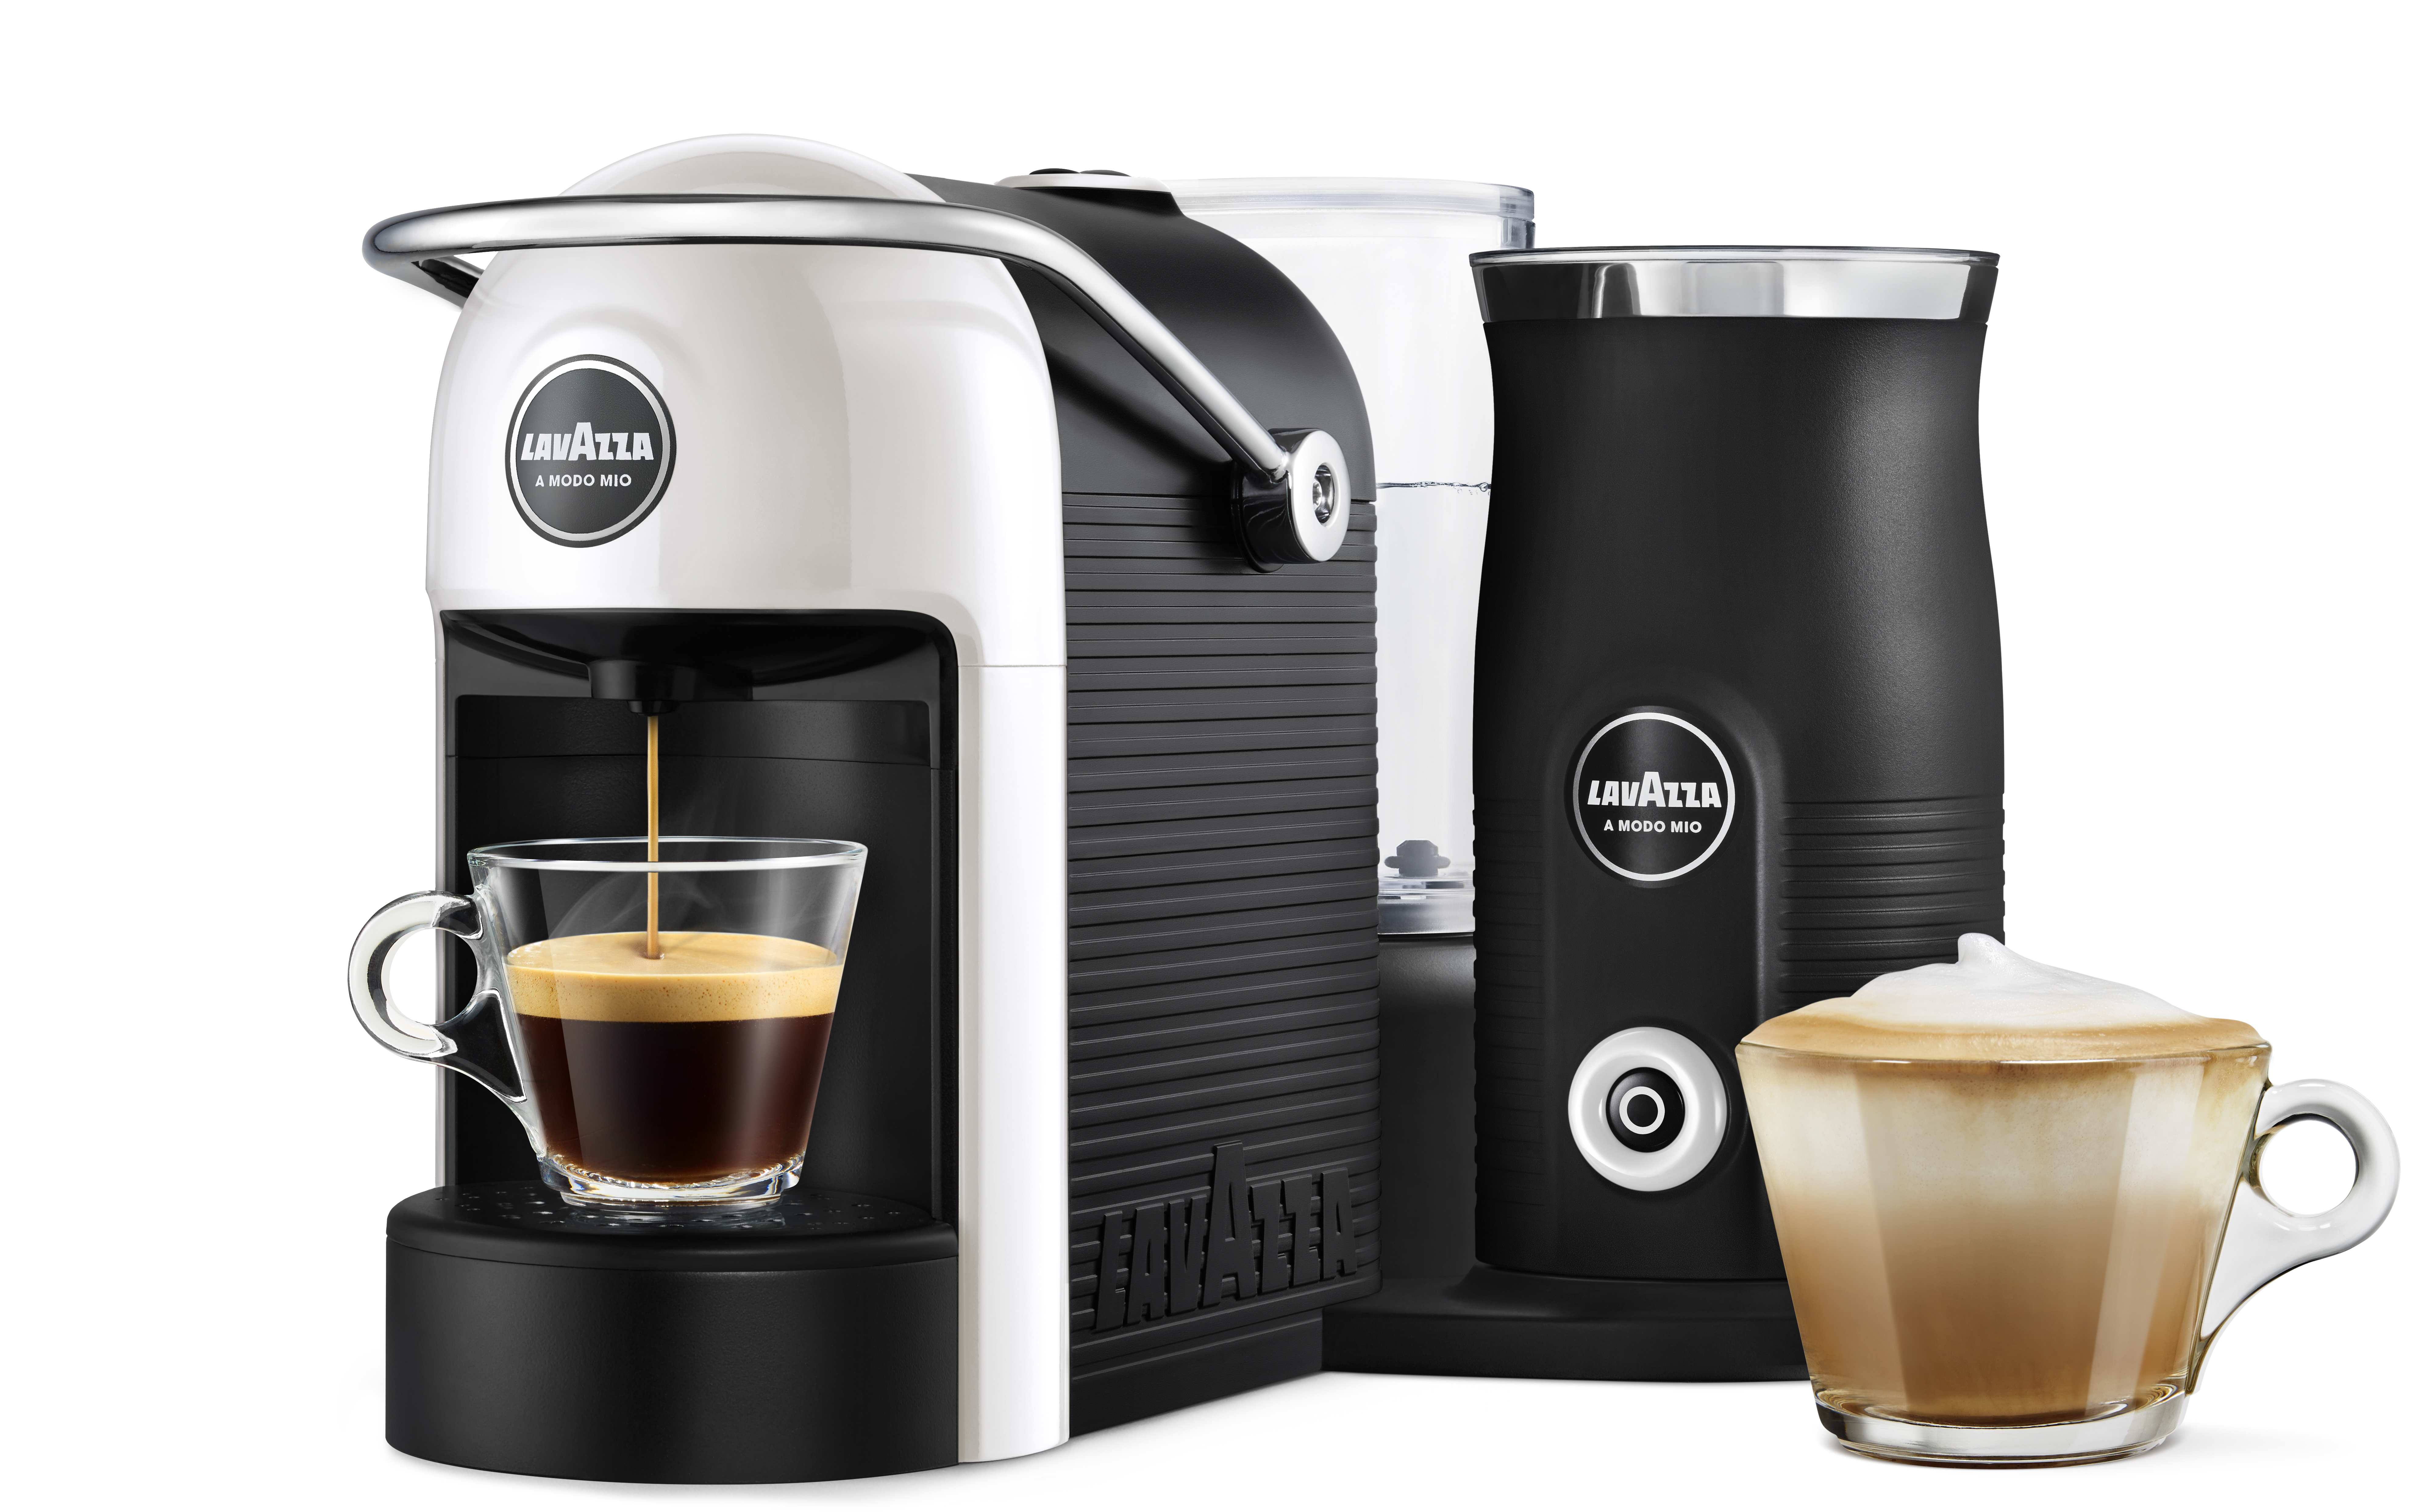 Treat someone this Christmas to the Lavazza Jolie & Milk coffee machine down from £129 to £64.50